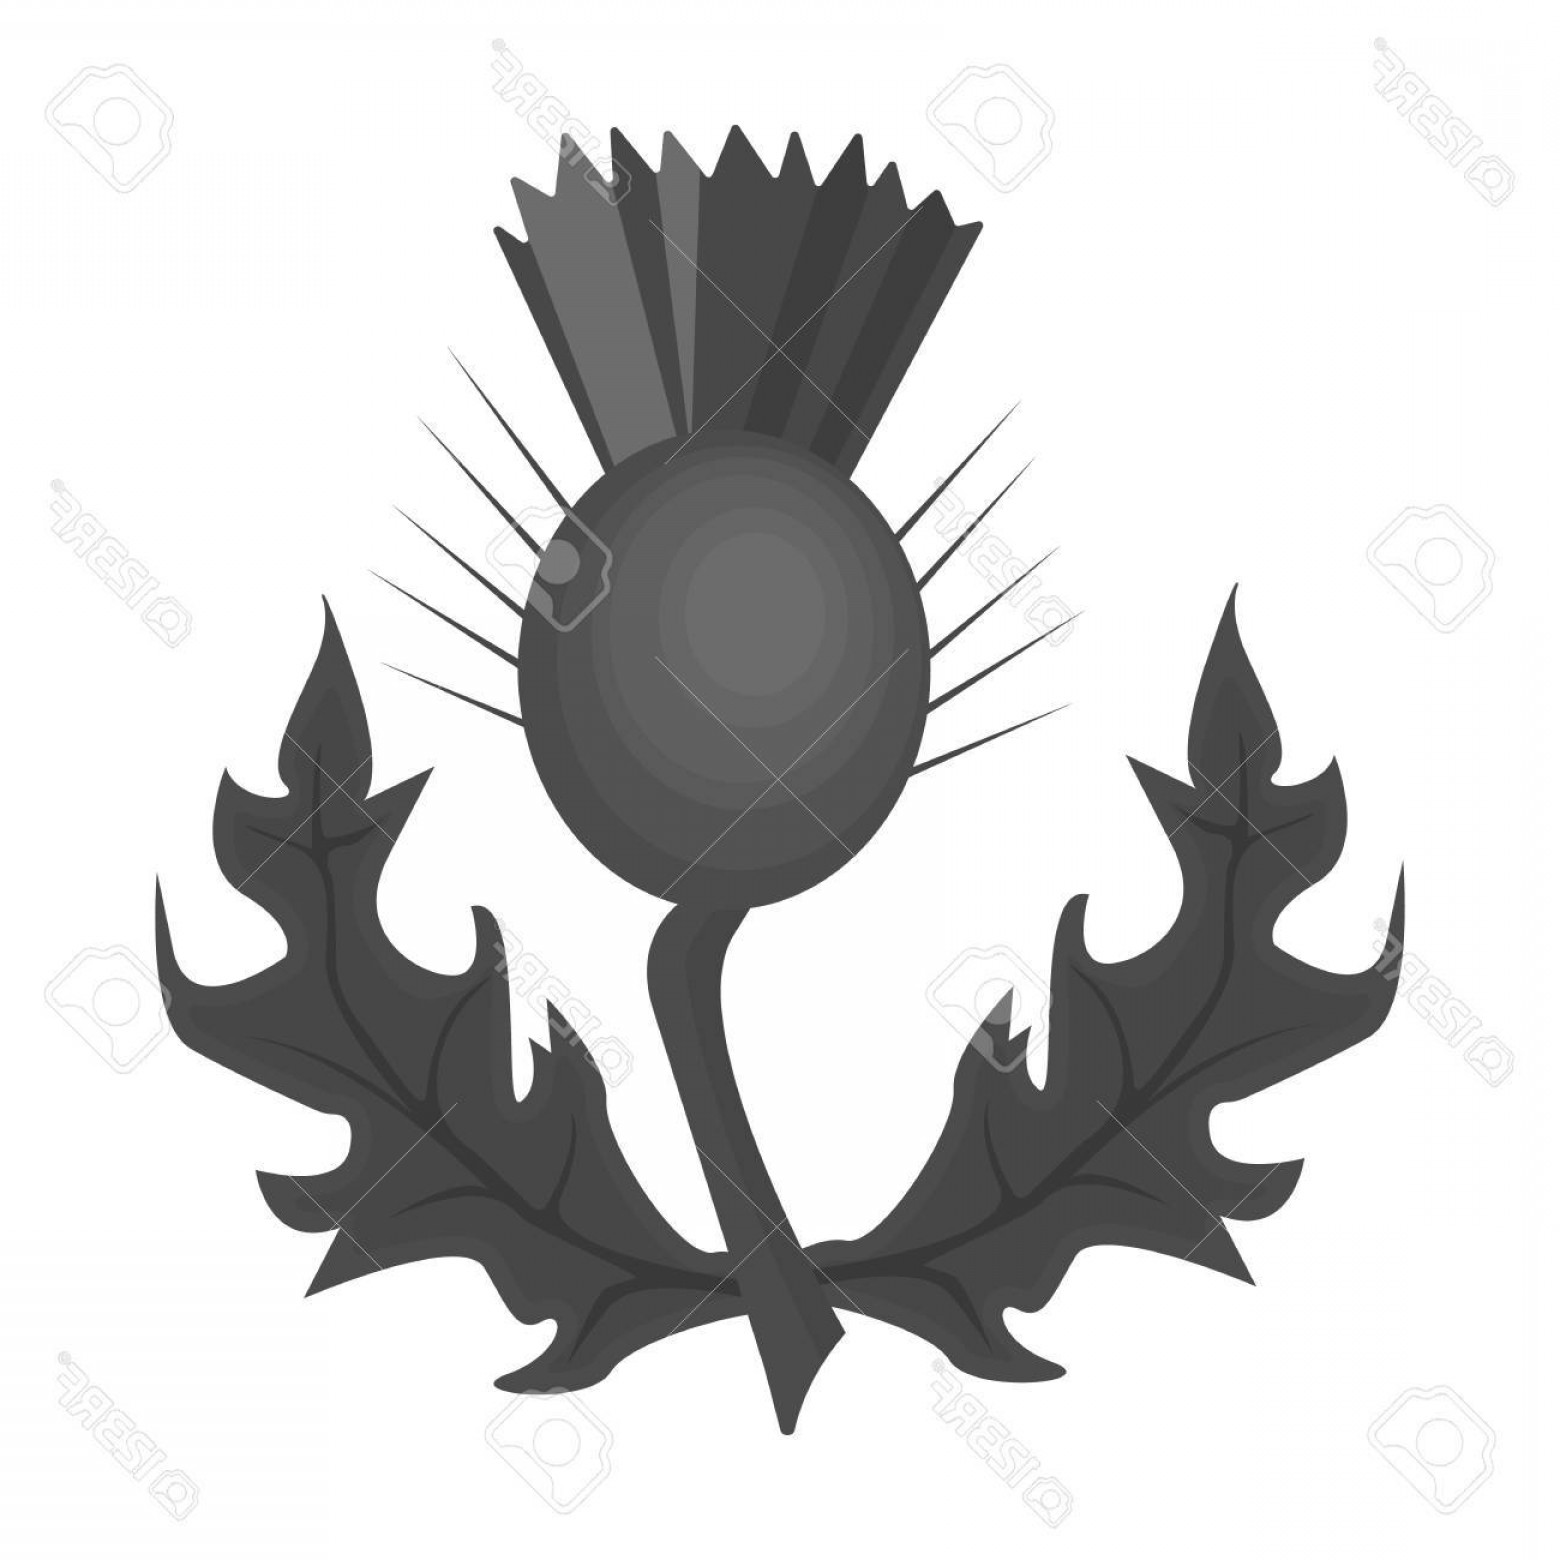 Scotland Heraldic Vector Graphic: Photostock Vector Thistles With Green Leaves Medicinal Plant Of Scotland Scotland Single Icon In Monochrome Style Vect